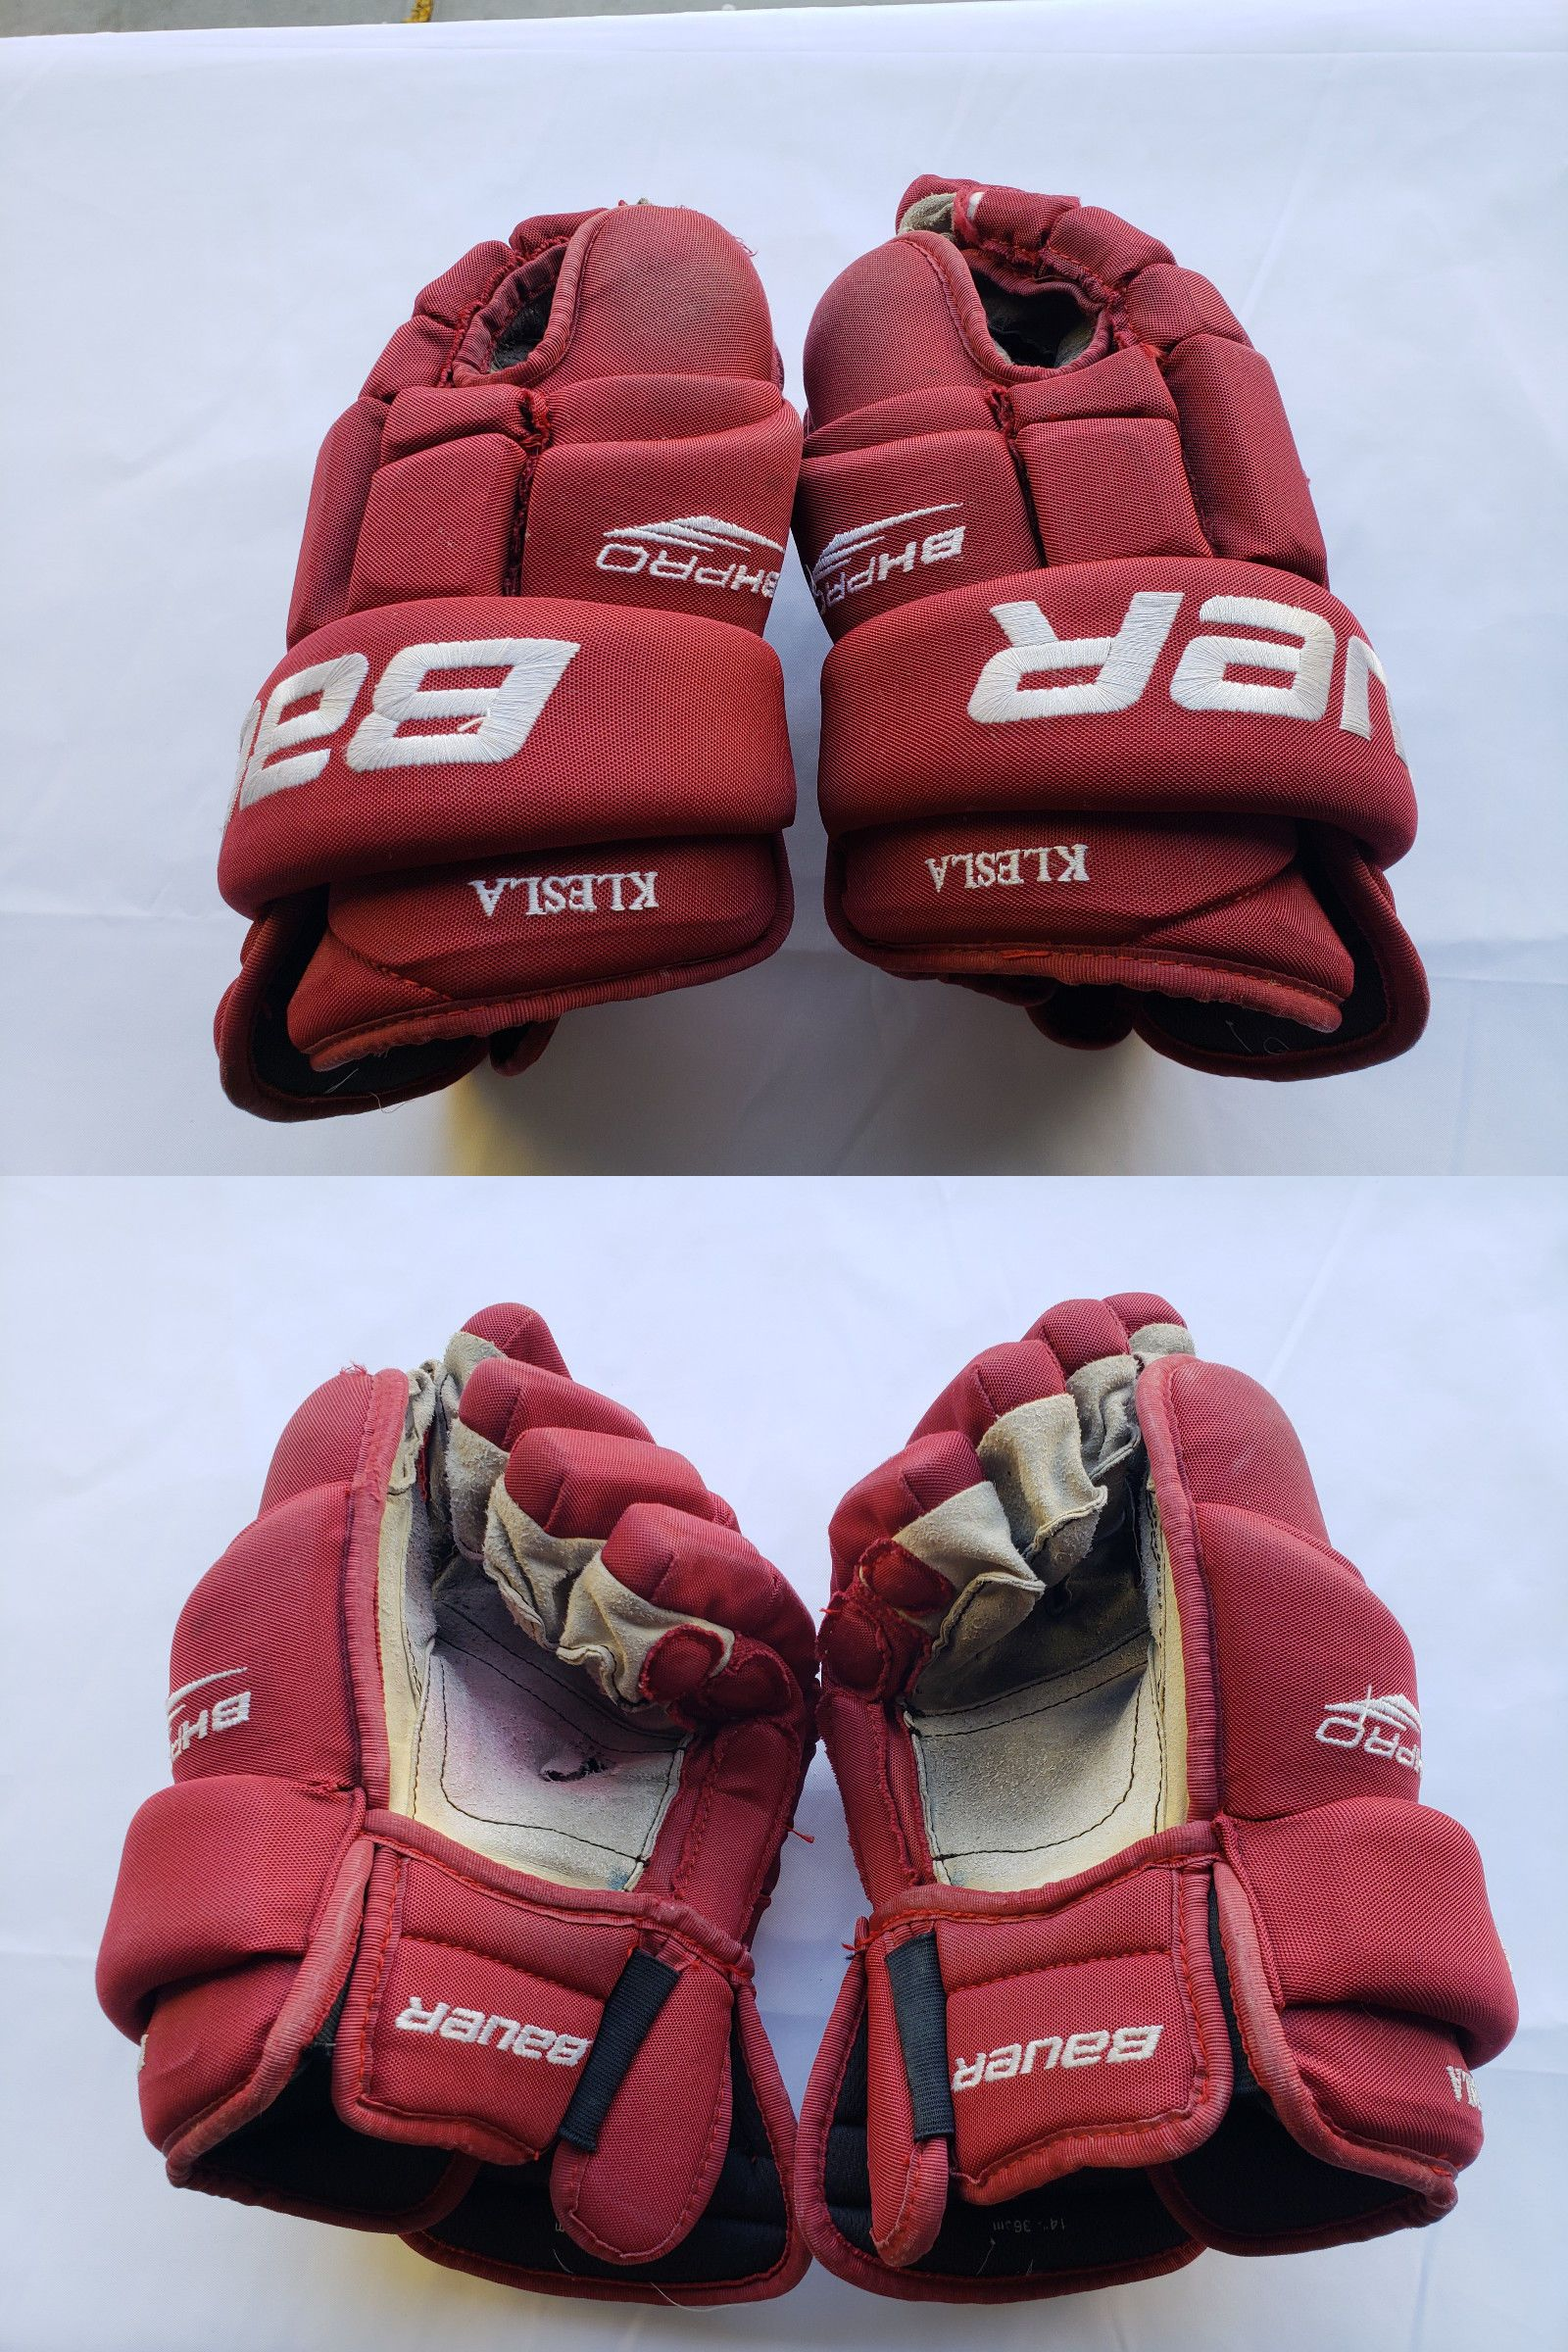 ac6684f1066 Clothing and Protective Gear 20855  Bauer Pro Stock Hockey Gloves Size 14  -  BUY IT NOW ONLY   30 on eBay!